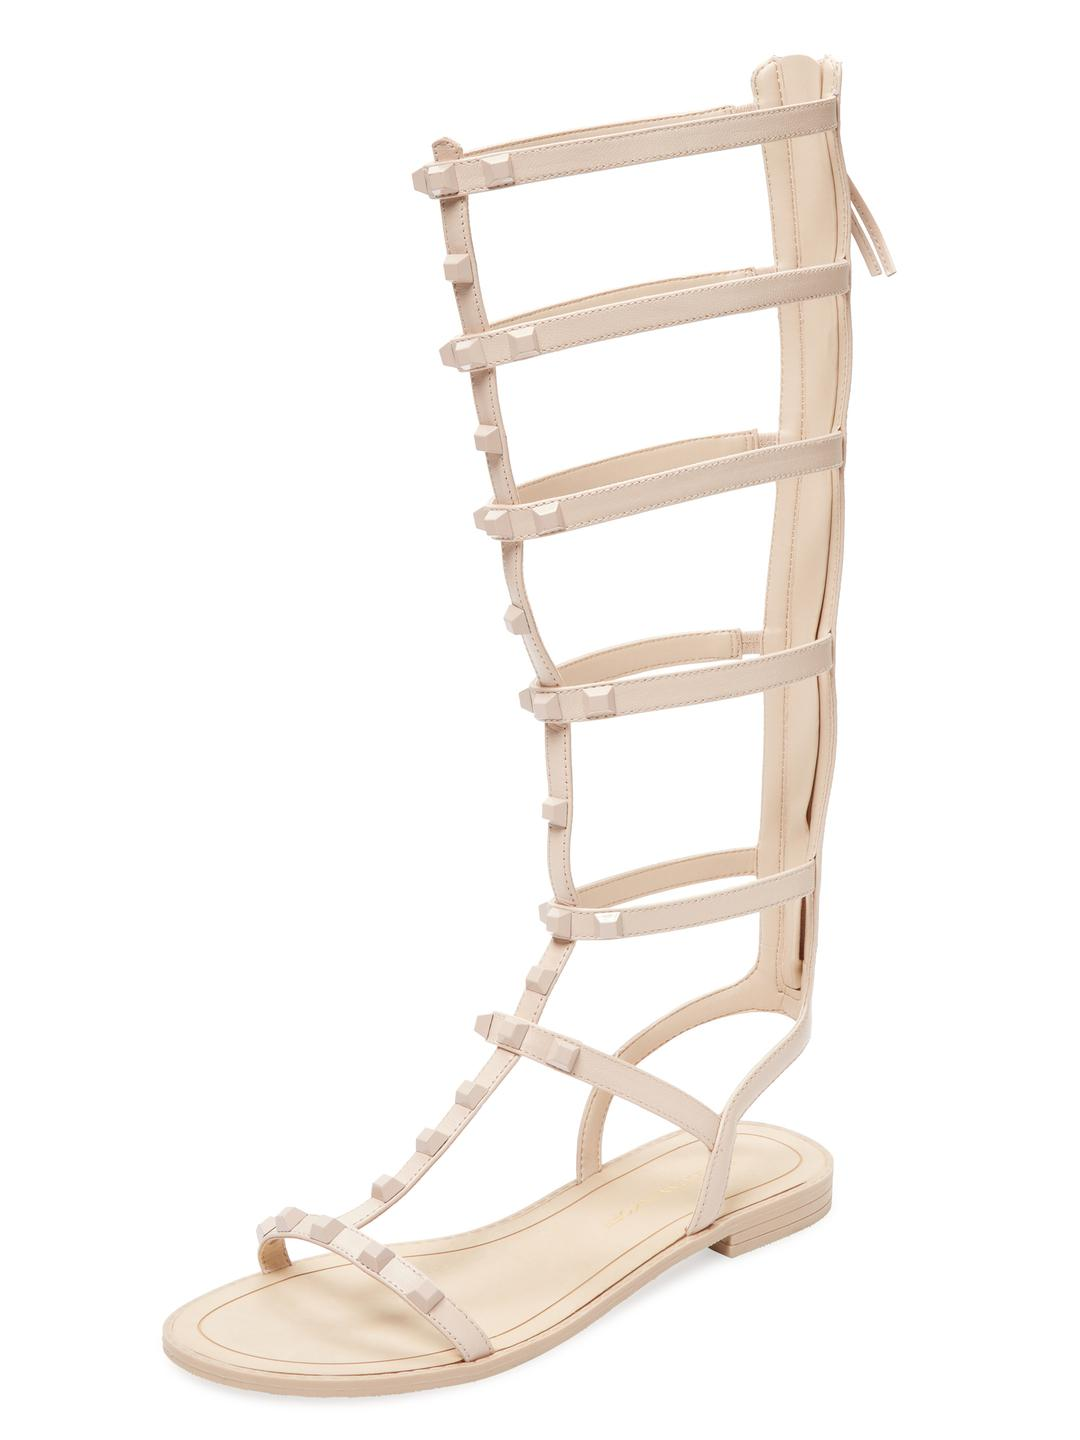 5c9274f94a0 Gallery. Previously sold at  Gilt · Women s Gladiator Sandals ...